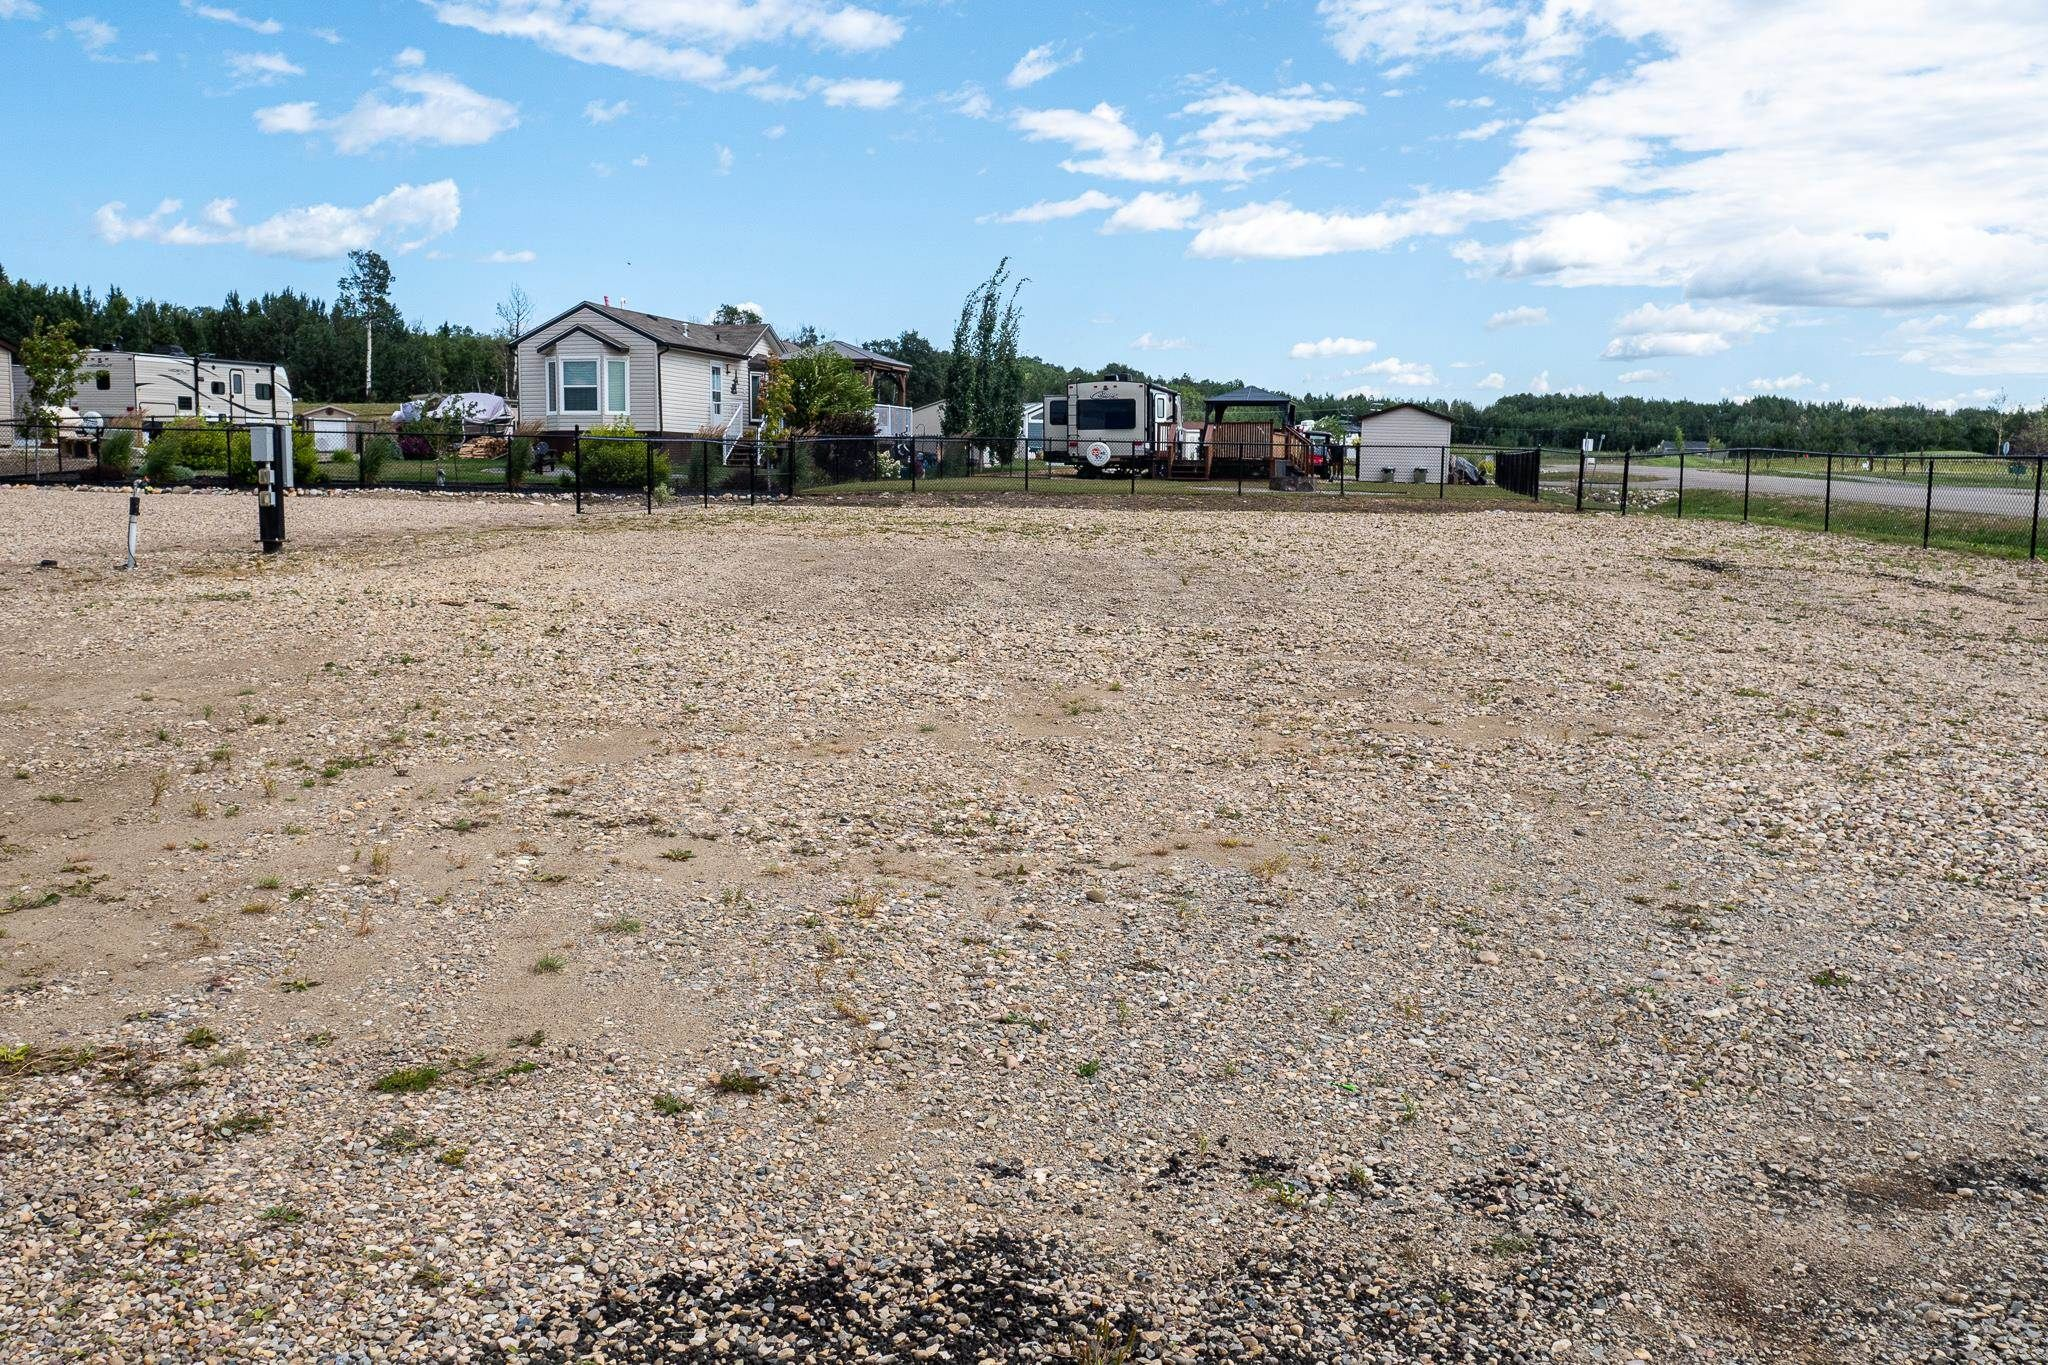 Main Photo: 86 454029 RGE RD 11: Rural Wetaskiwin County Rural Land/Vacant Lot for sale : MLS®# E4258383